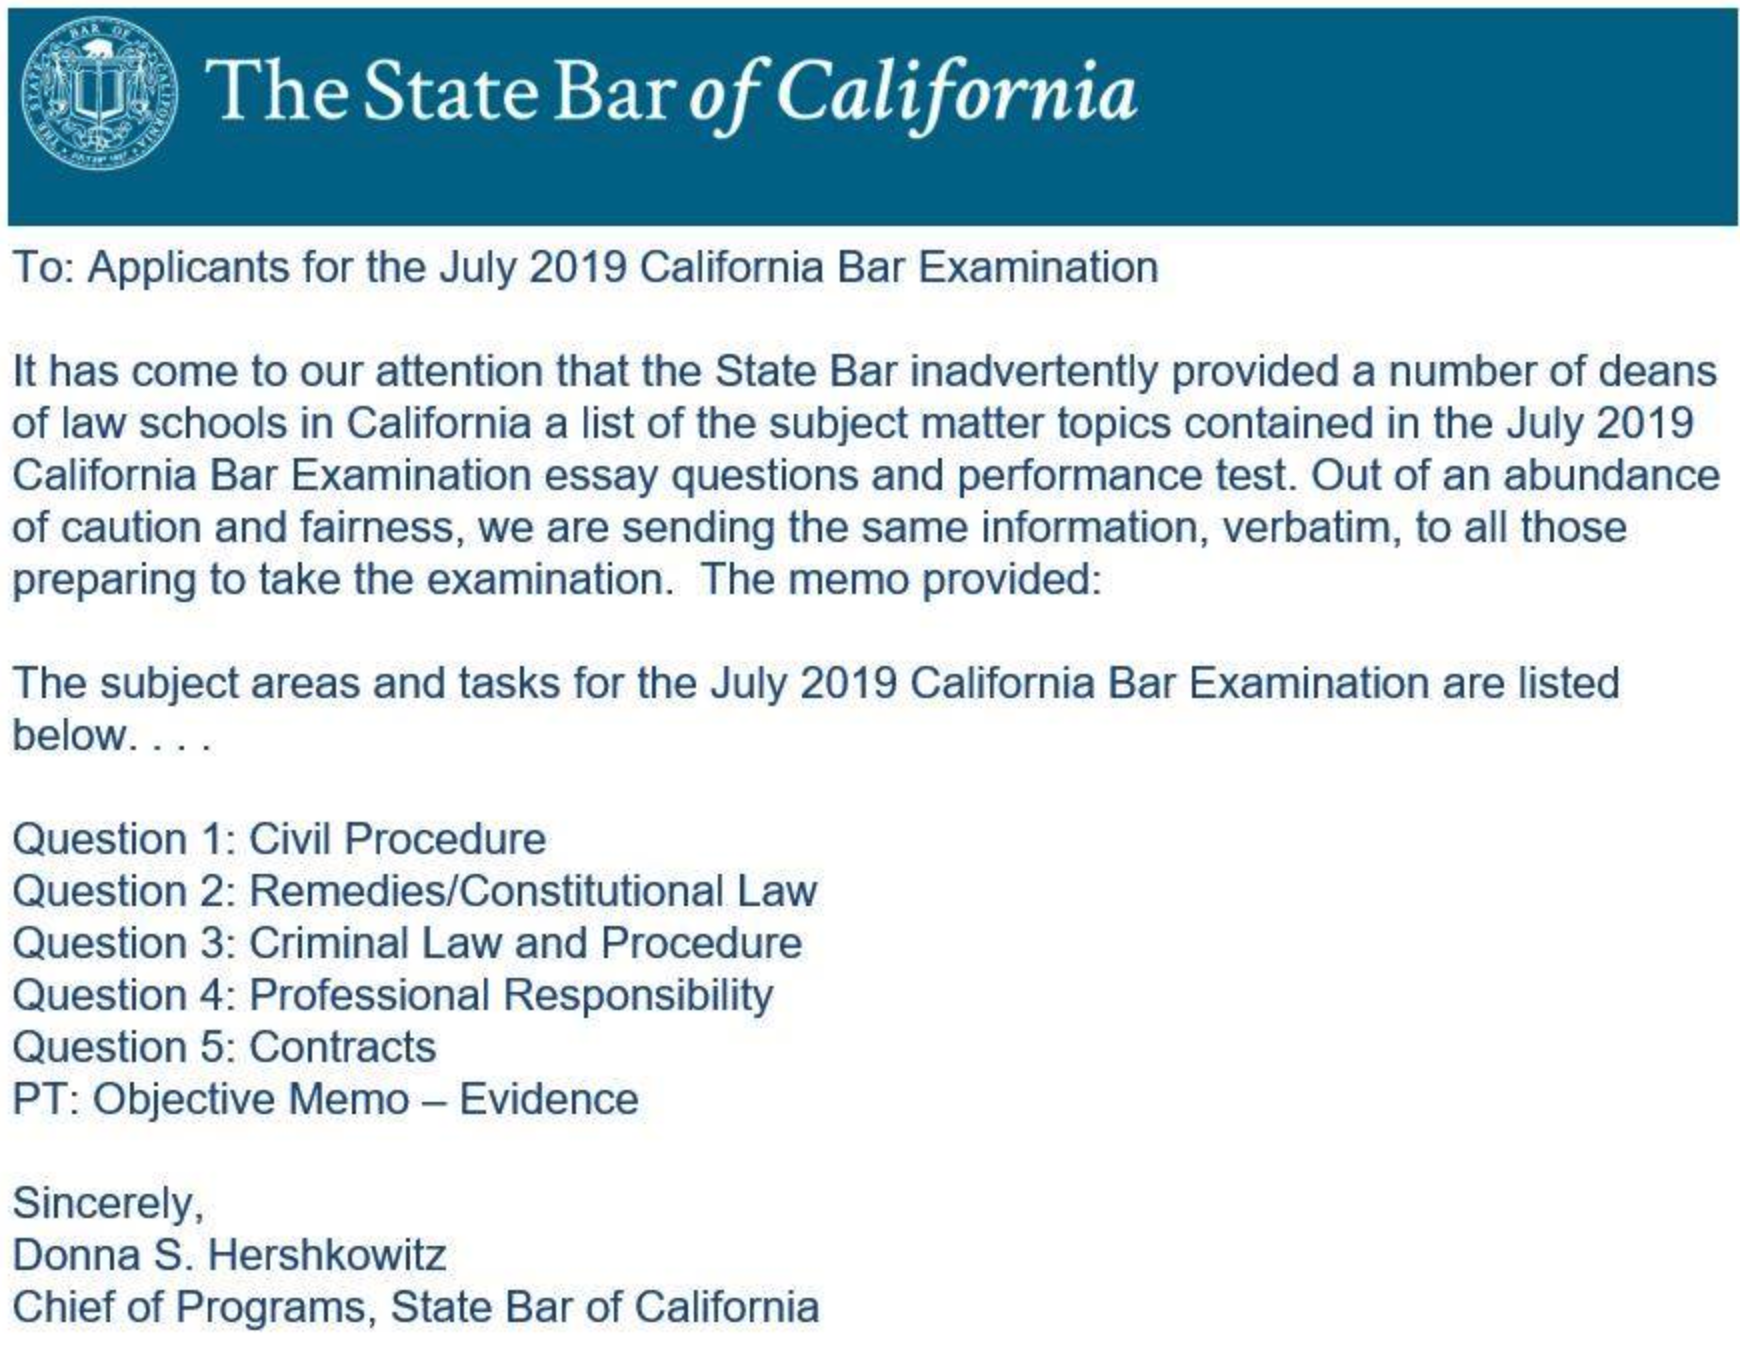 California Bar exam question leak raises questions | Legal io